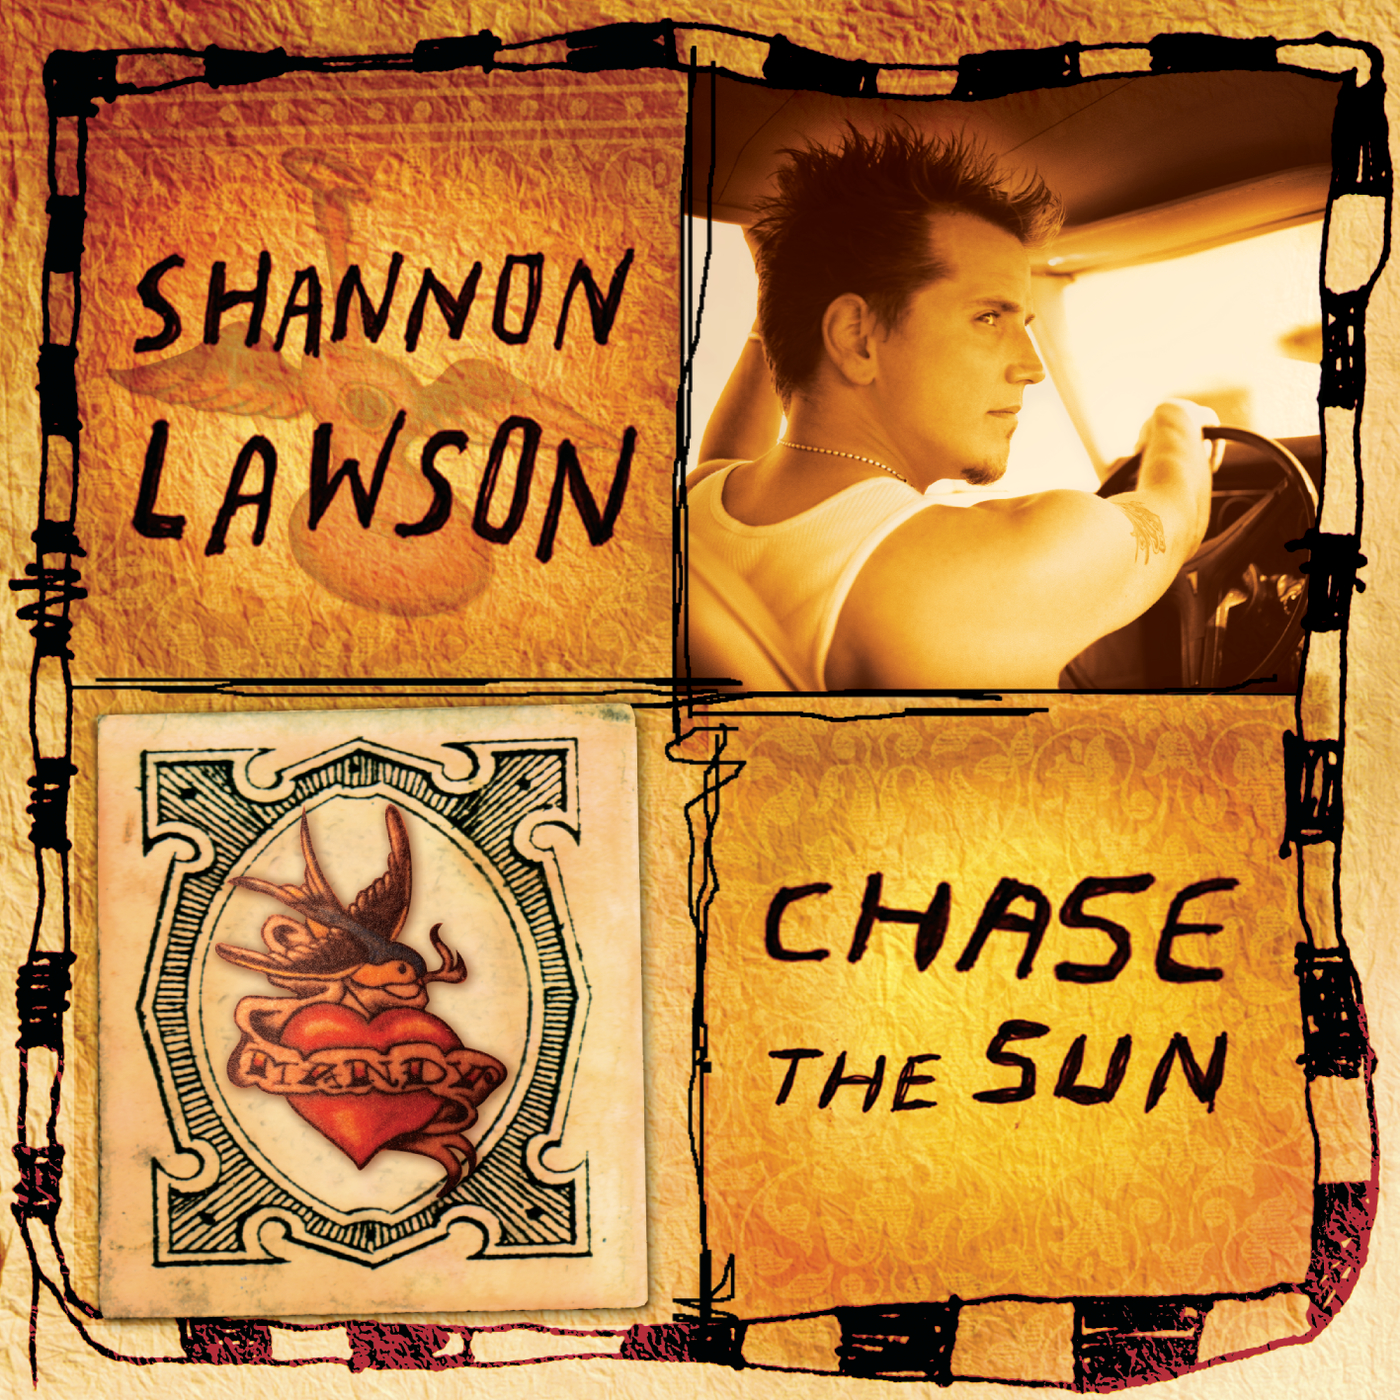 Shannon Lawson Radio: Listen to Free Music & Get The